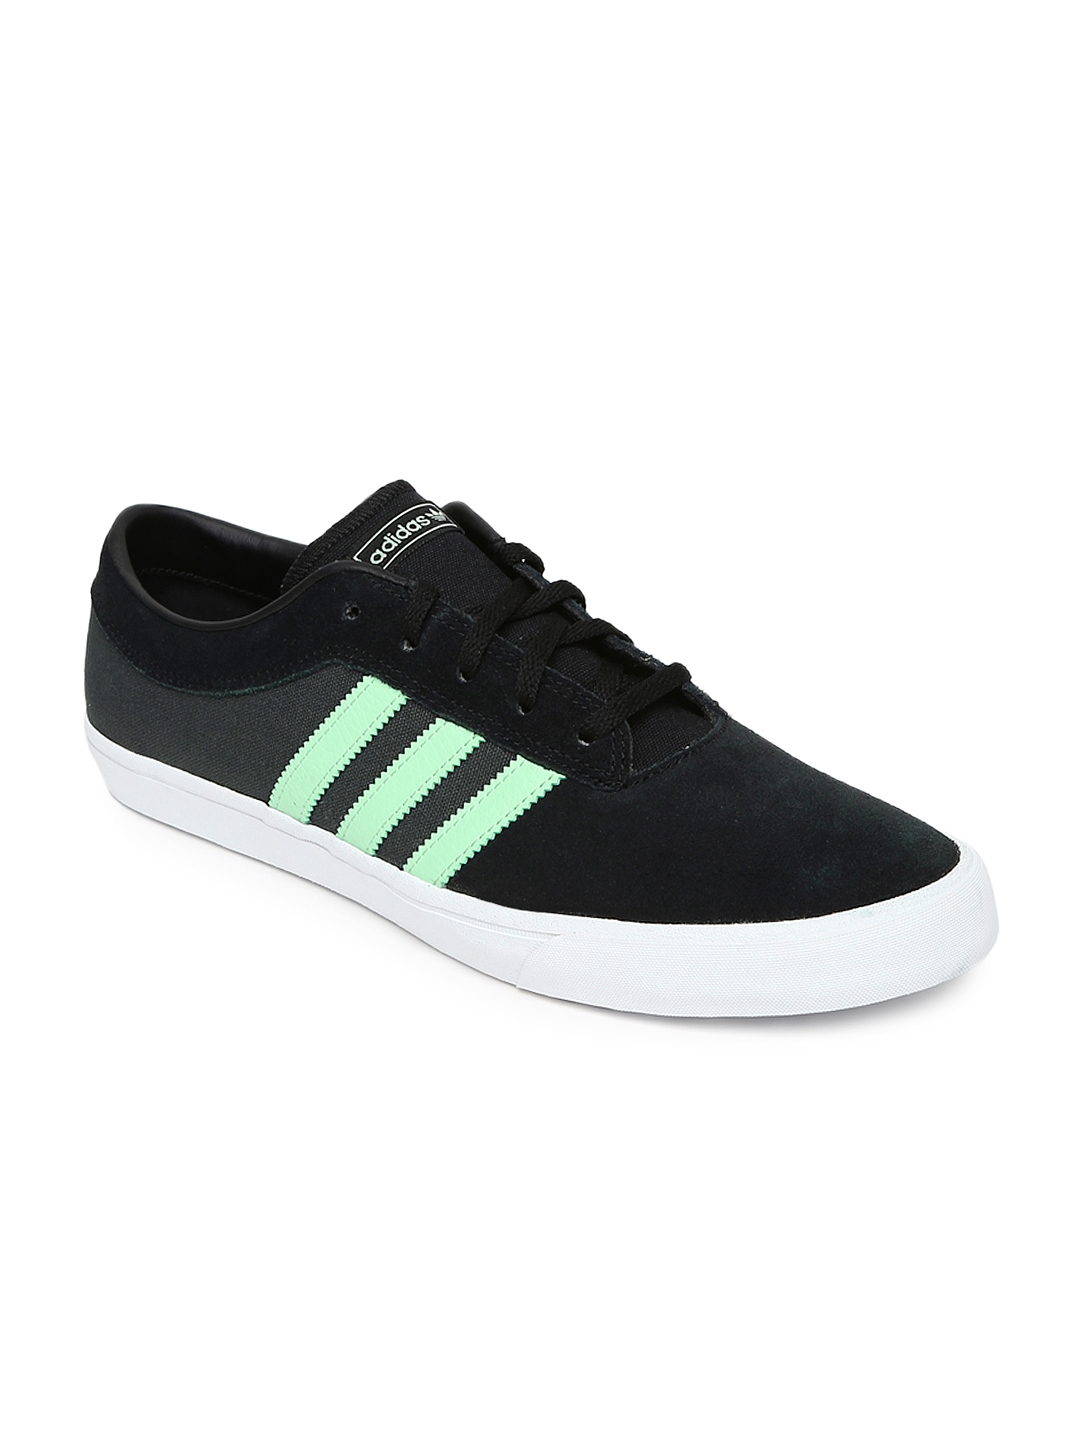 2c111ac5b6f Buy ADIDAS Originals Men Black Colourblocked Sellwood Skateboard Shoes -  Casual Shoes for Men 1525192